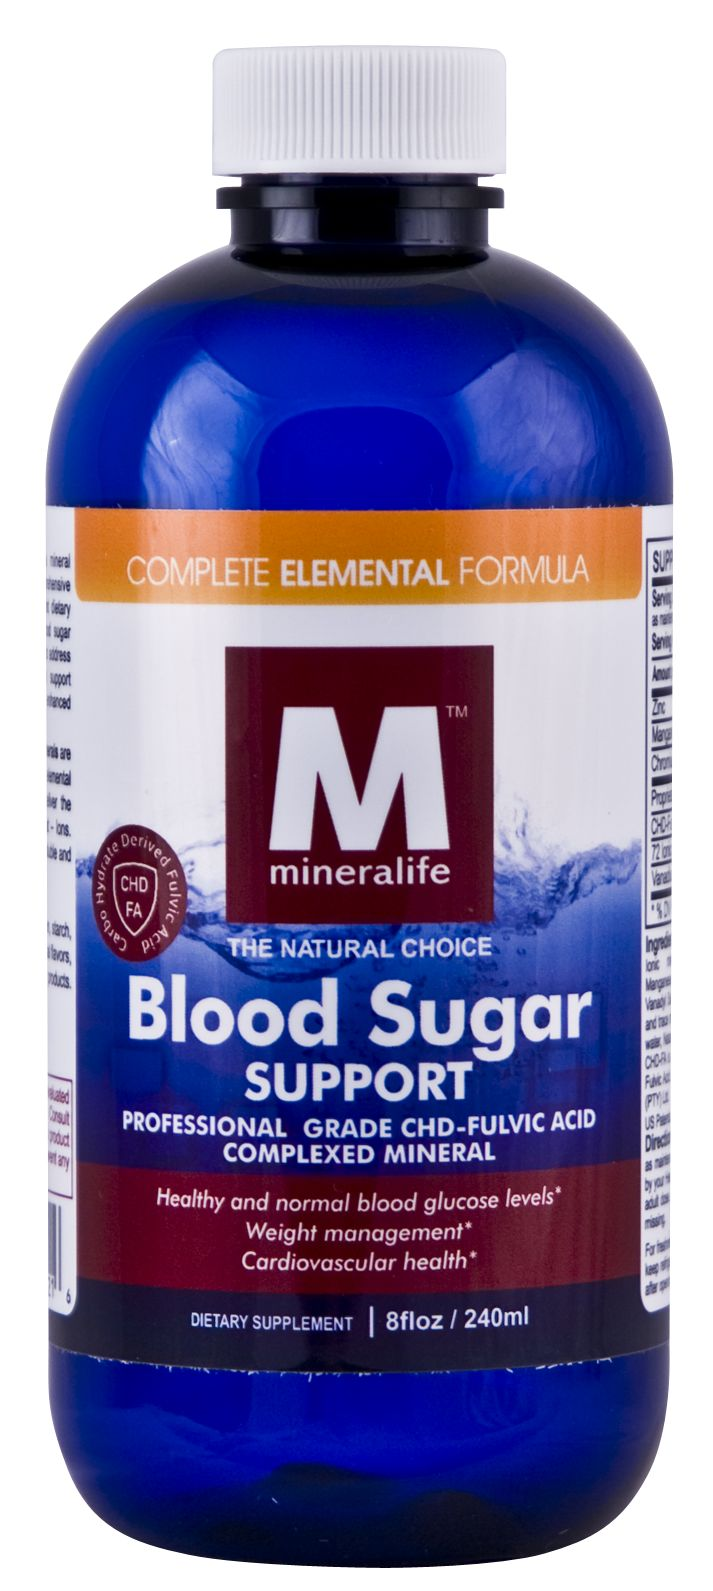 Blood Sugar Support Helps to Support: Healthy and normal blood glucose levels Weight management Normal fertility Healthy and normal growth Healthy sugar levels in the body Cardiovascular health Healthy lipids